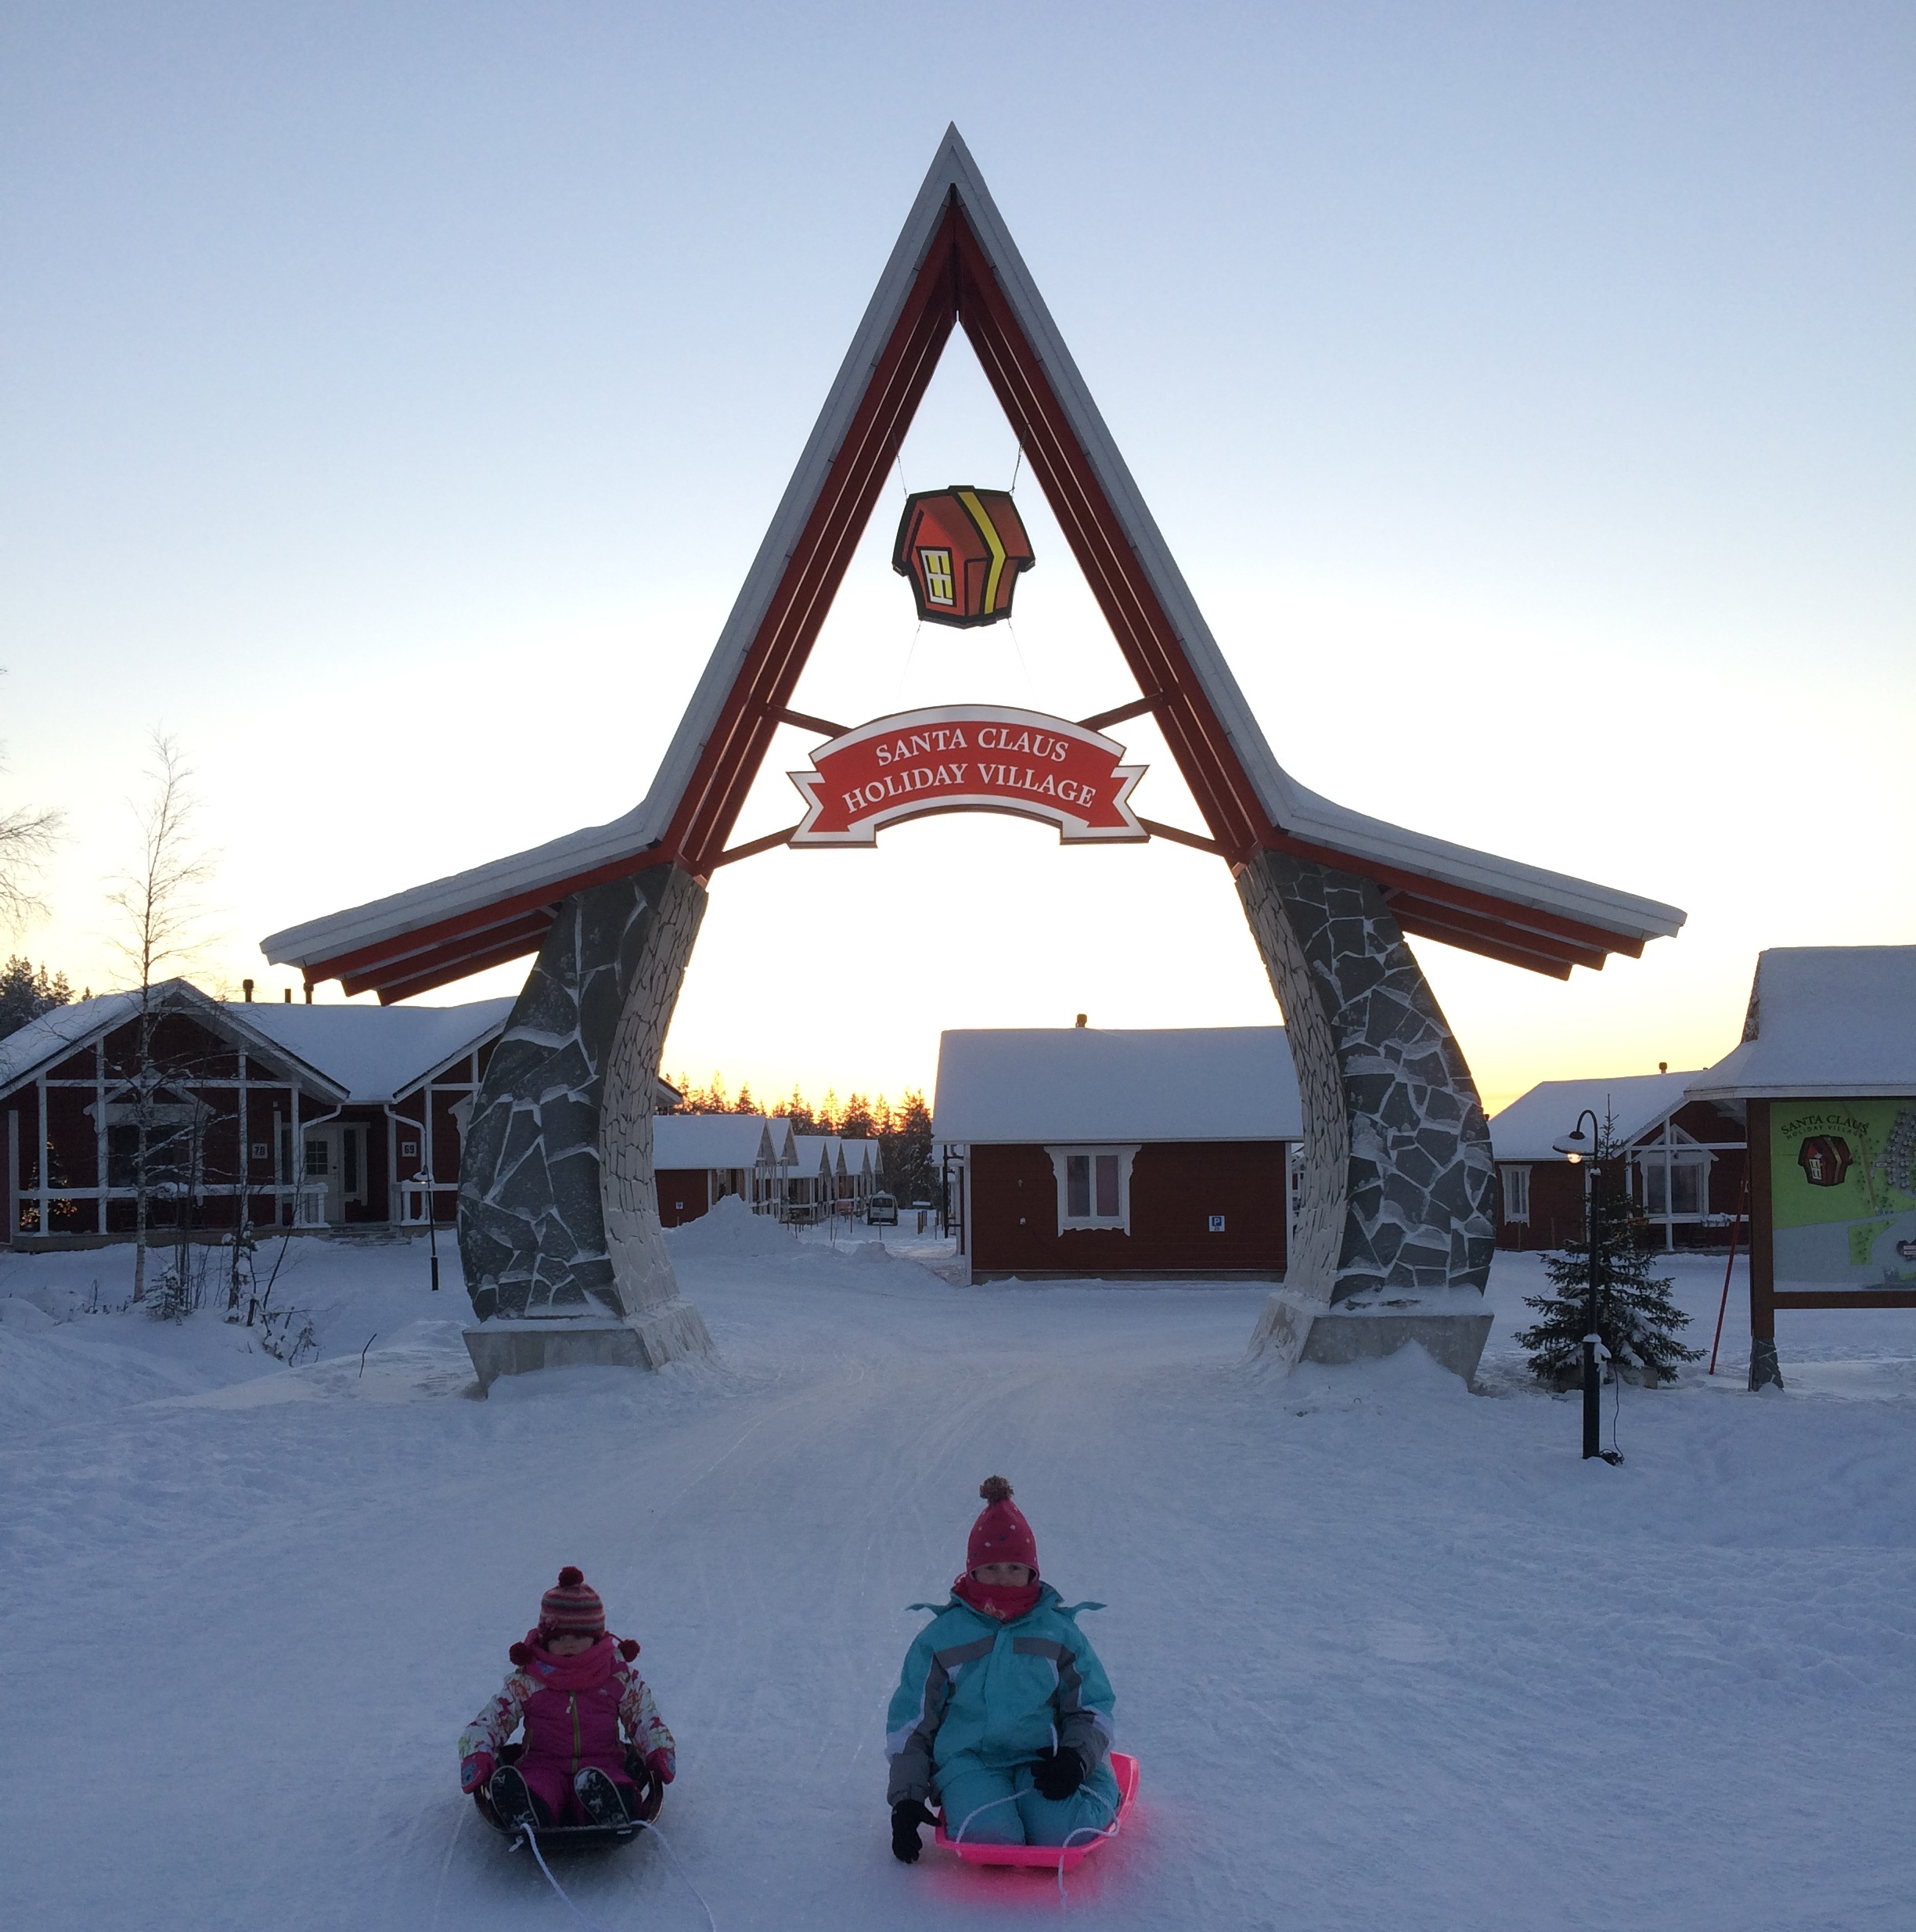 Archway leading to the chalets at the Santa Claus Holida Village in Rovaniemi, Finland